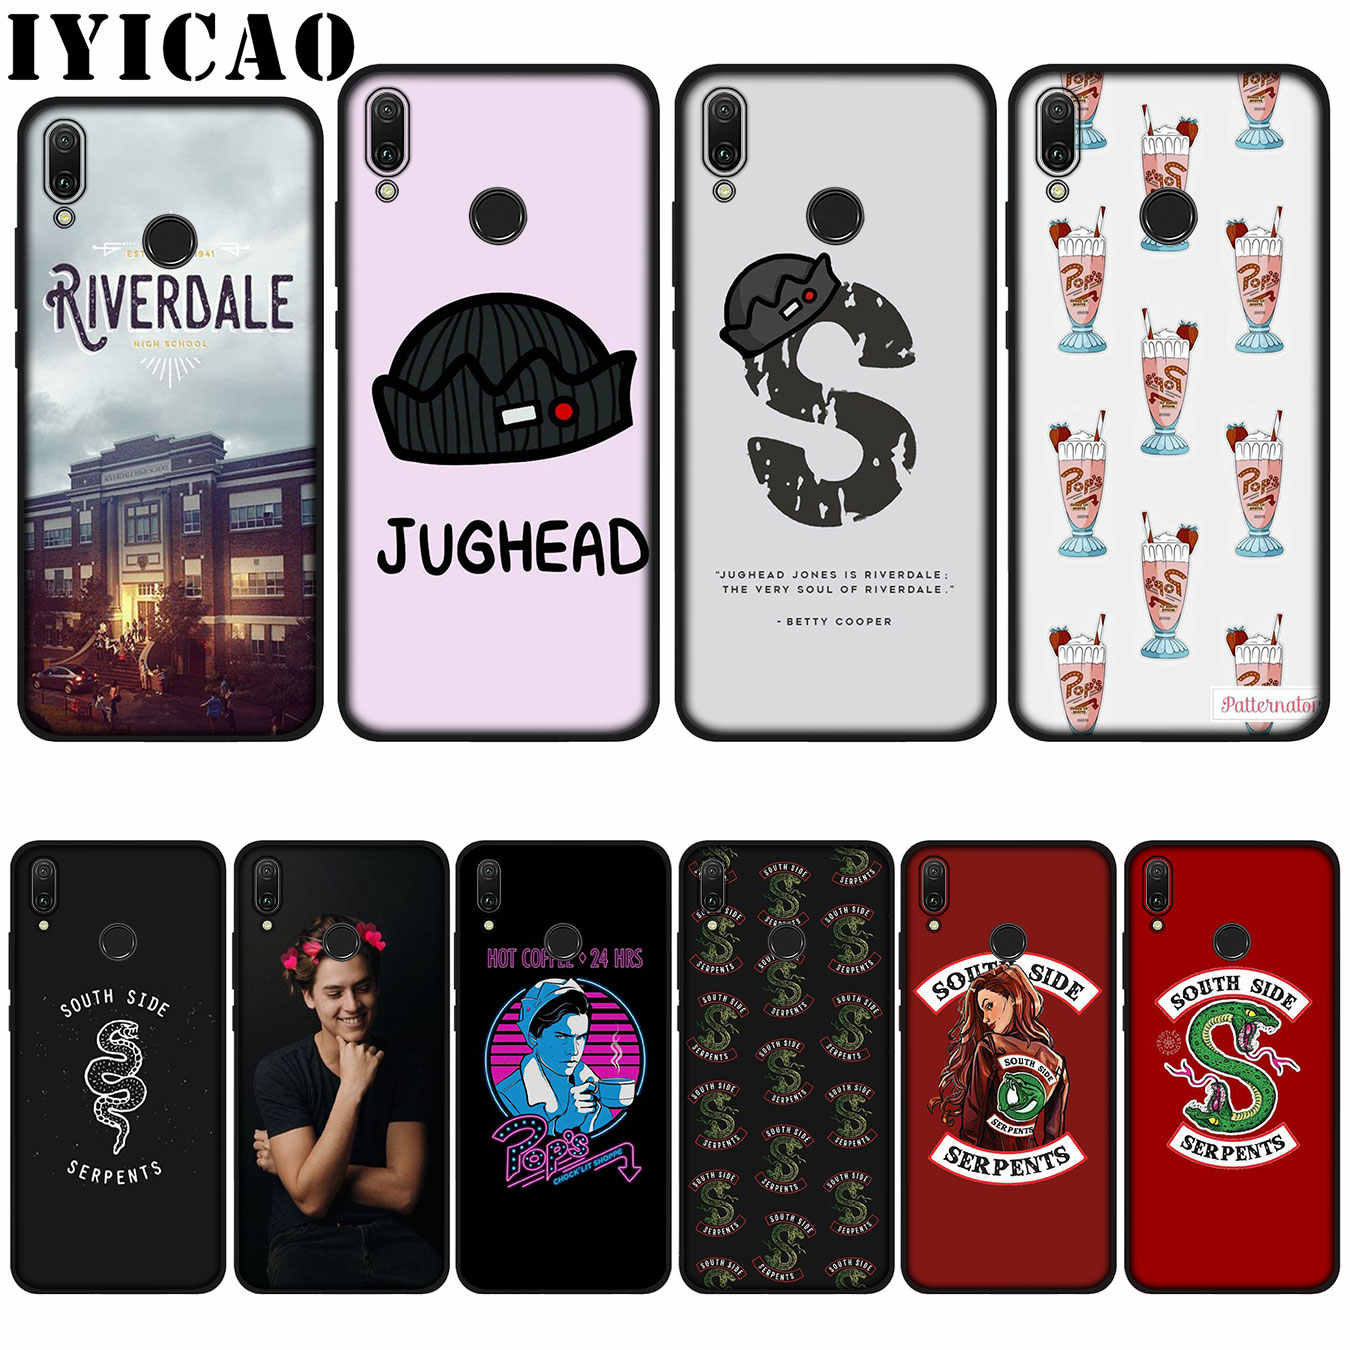 IYICAO Riverdale South Side Serpents Soft Case for Huawei P20 Pro P10 P8 P9 P30 Lite Mini 2017 P Smart 2019 Cover